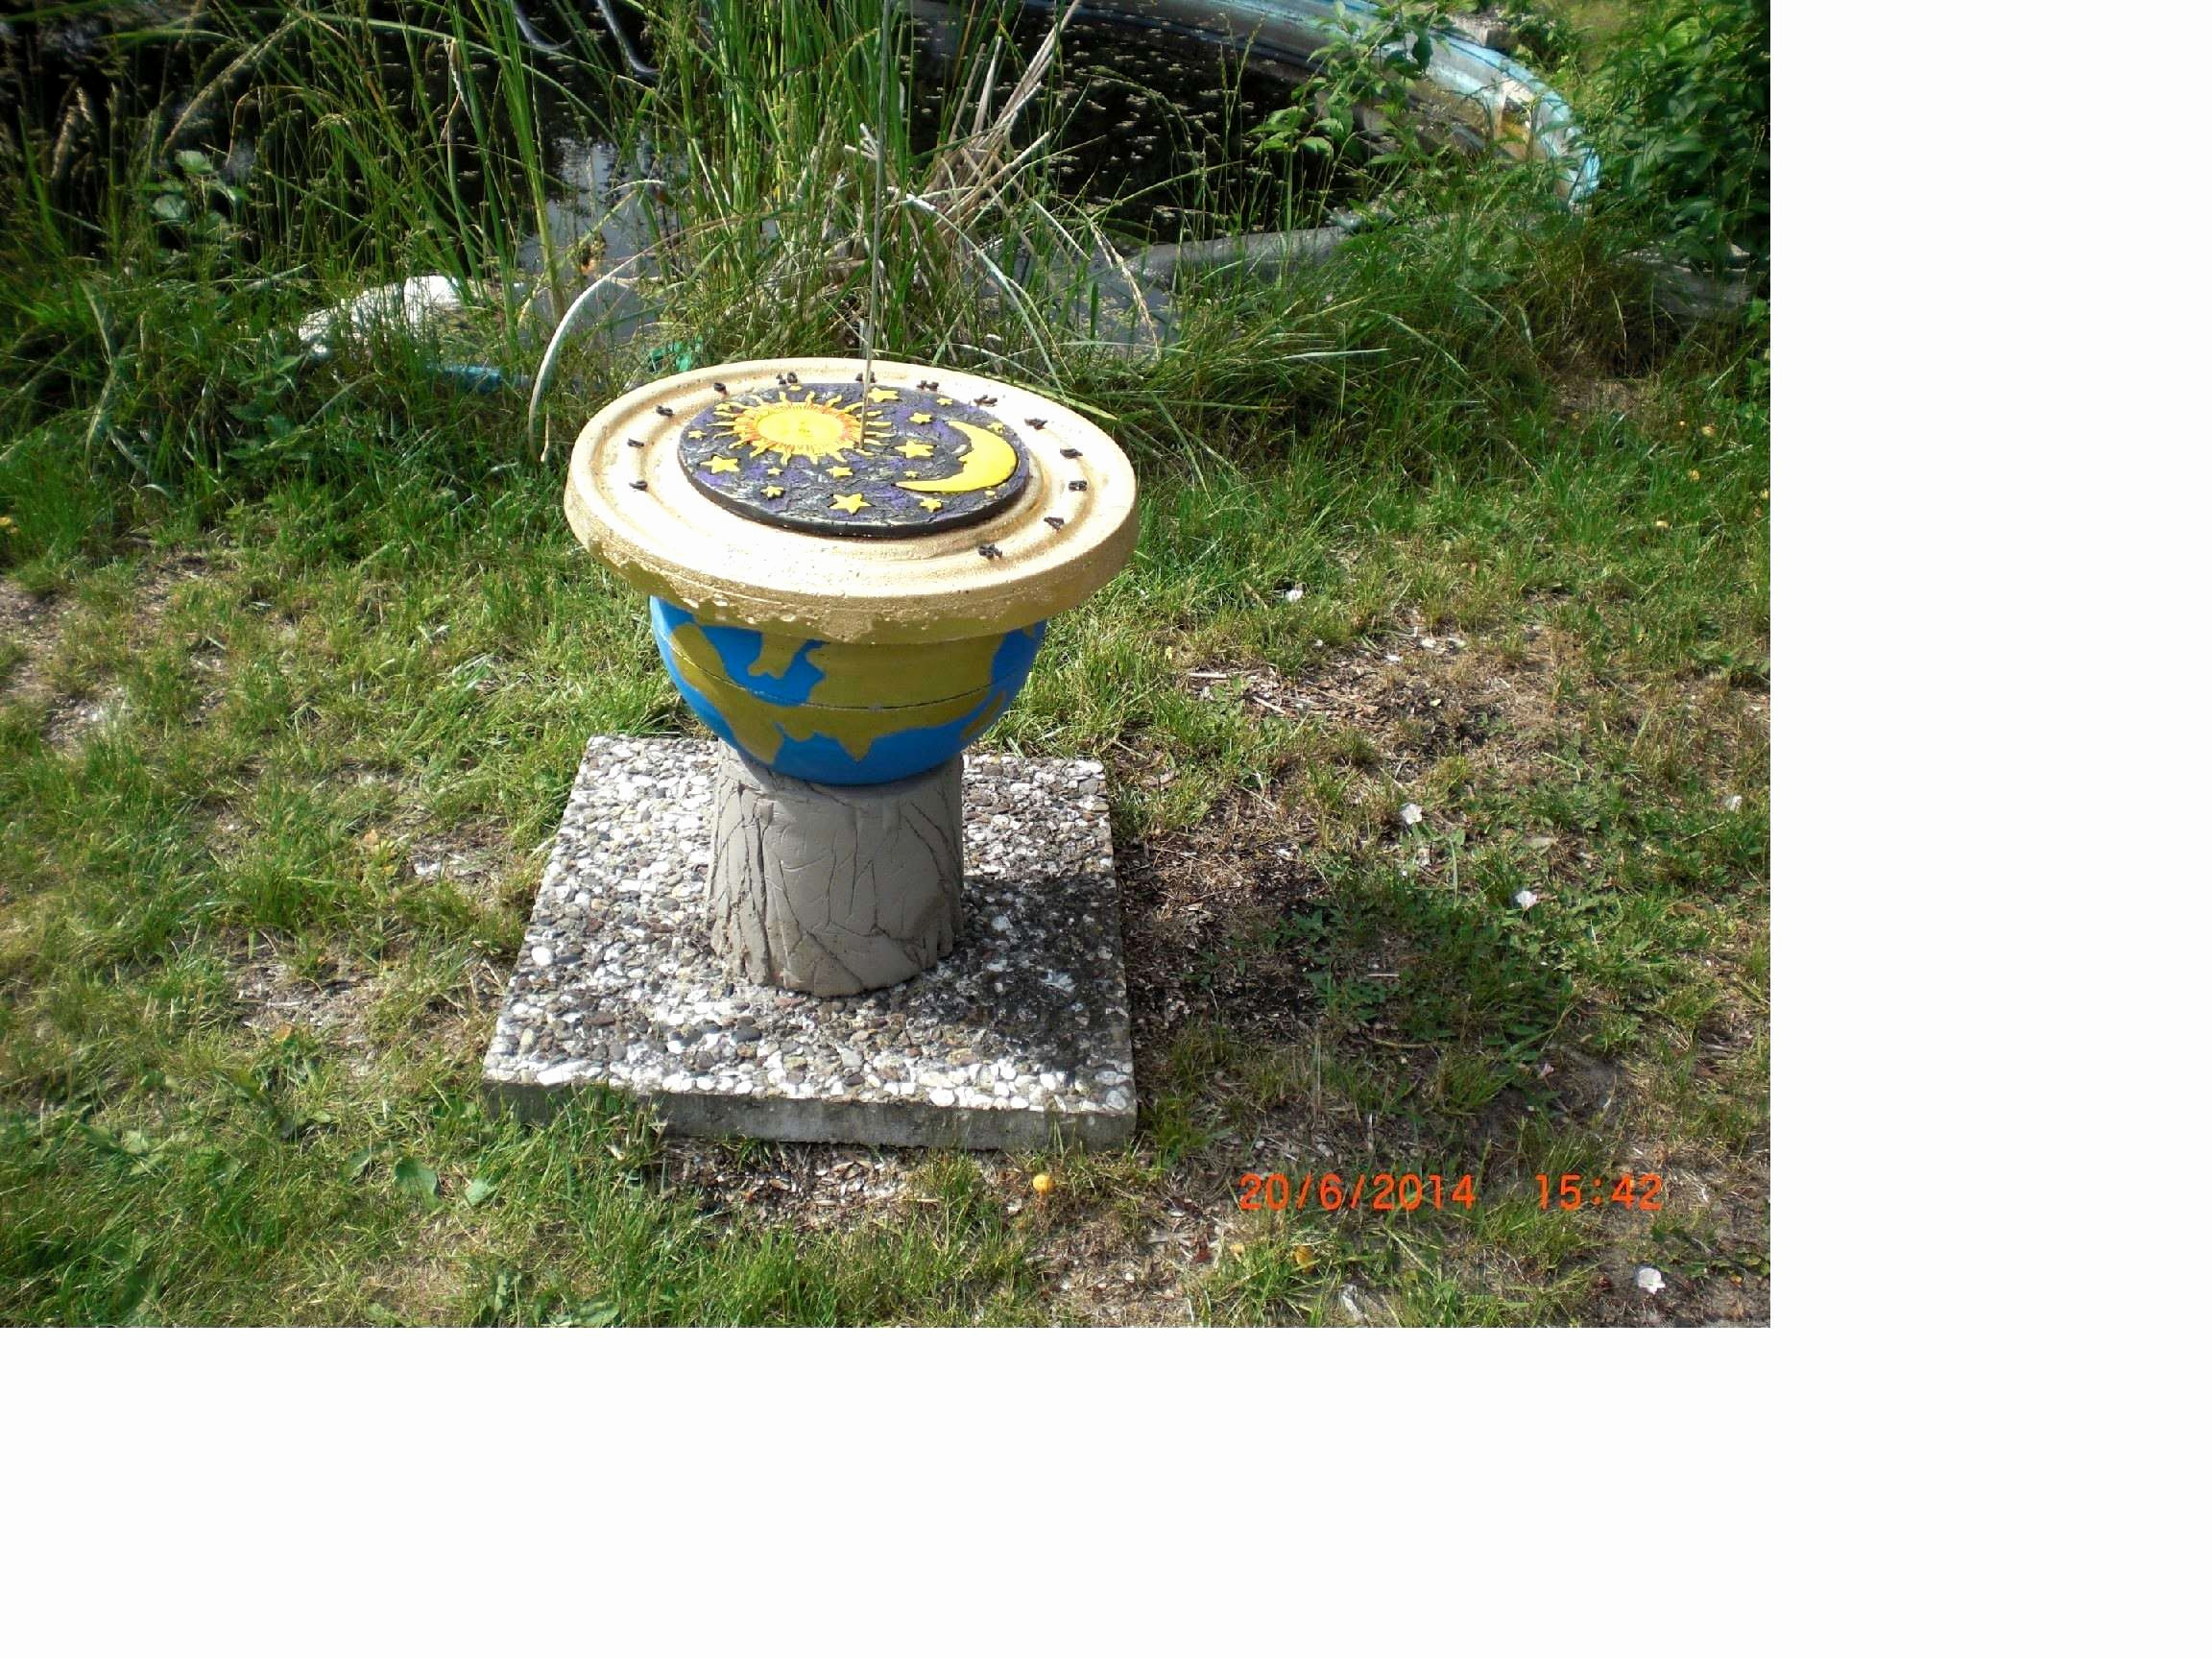 garden water features picture of garten ideen reizend garten ideen diy modell diy projects youtube of garden water features